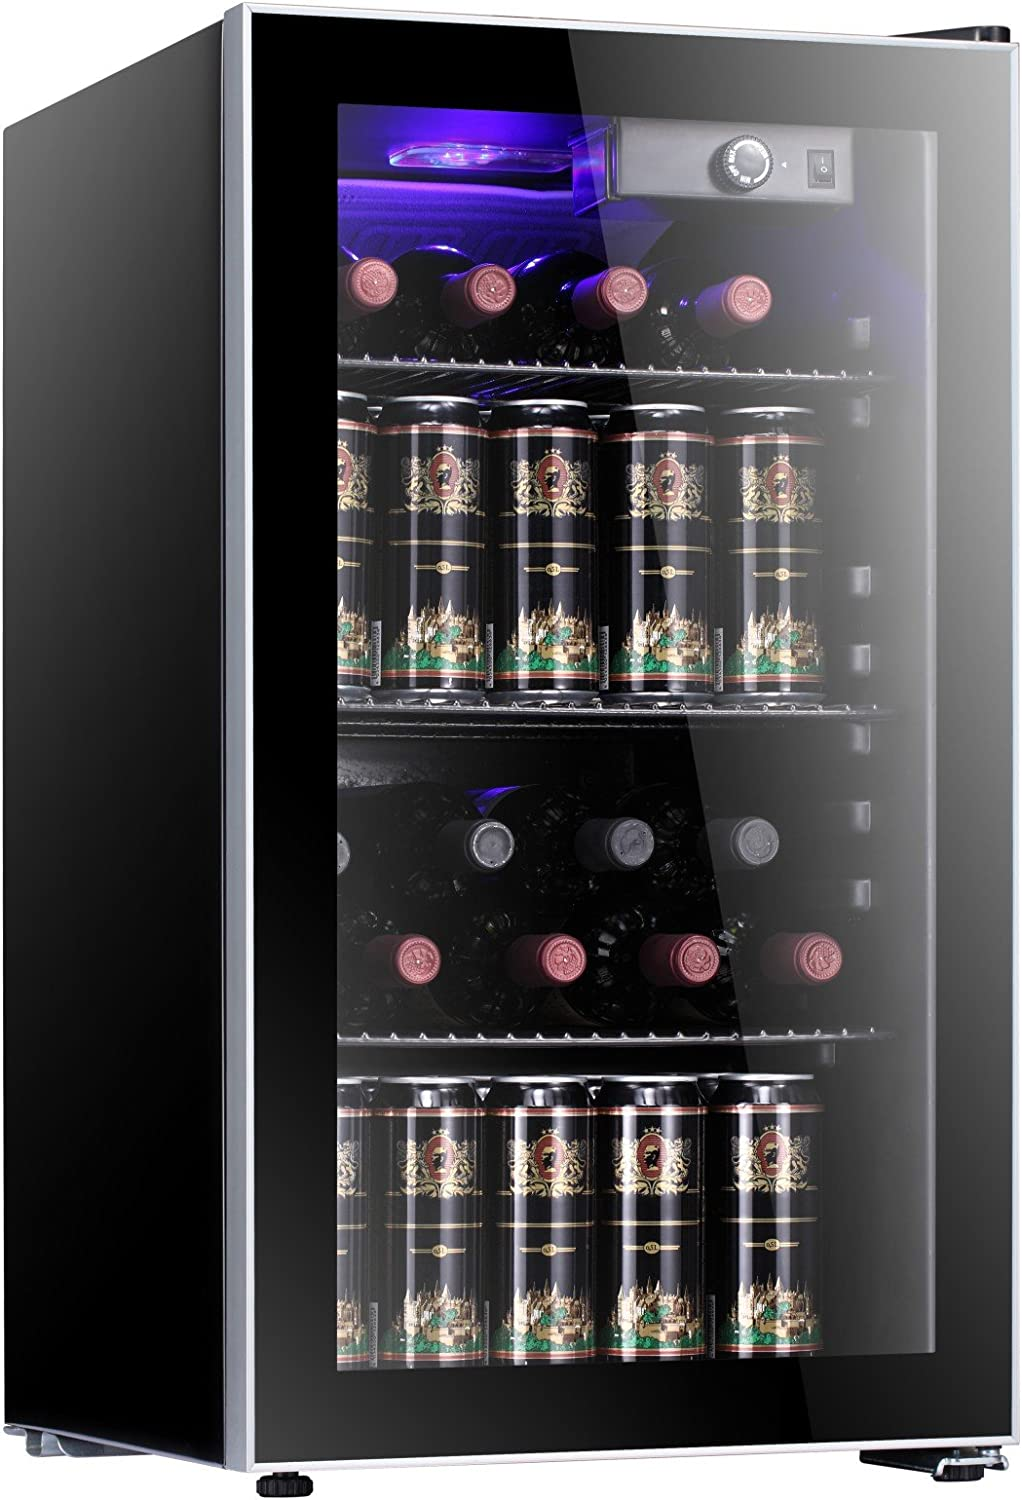 9. Antarctic Star 26 Bottle Wine Cooler